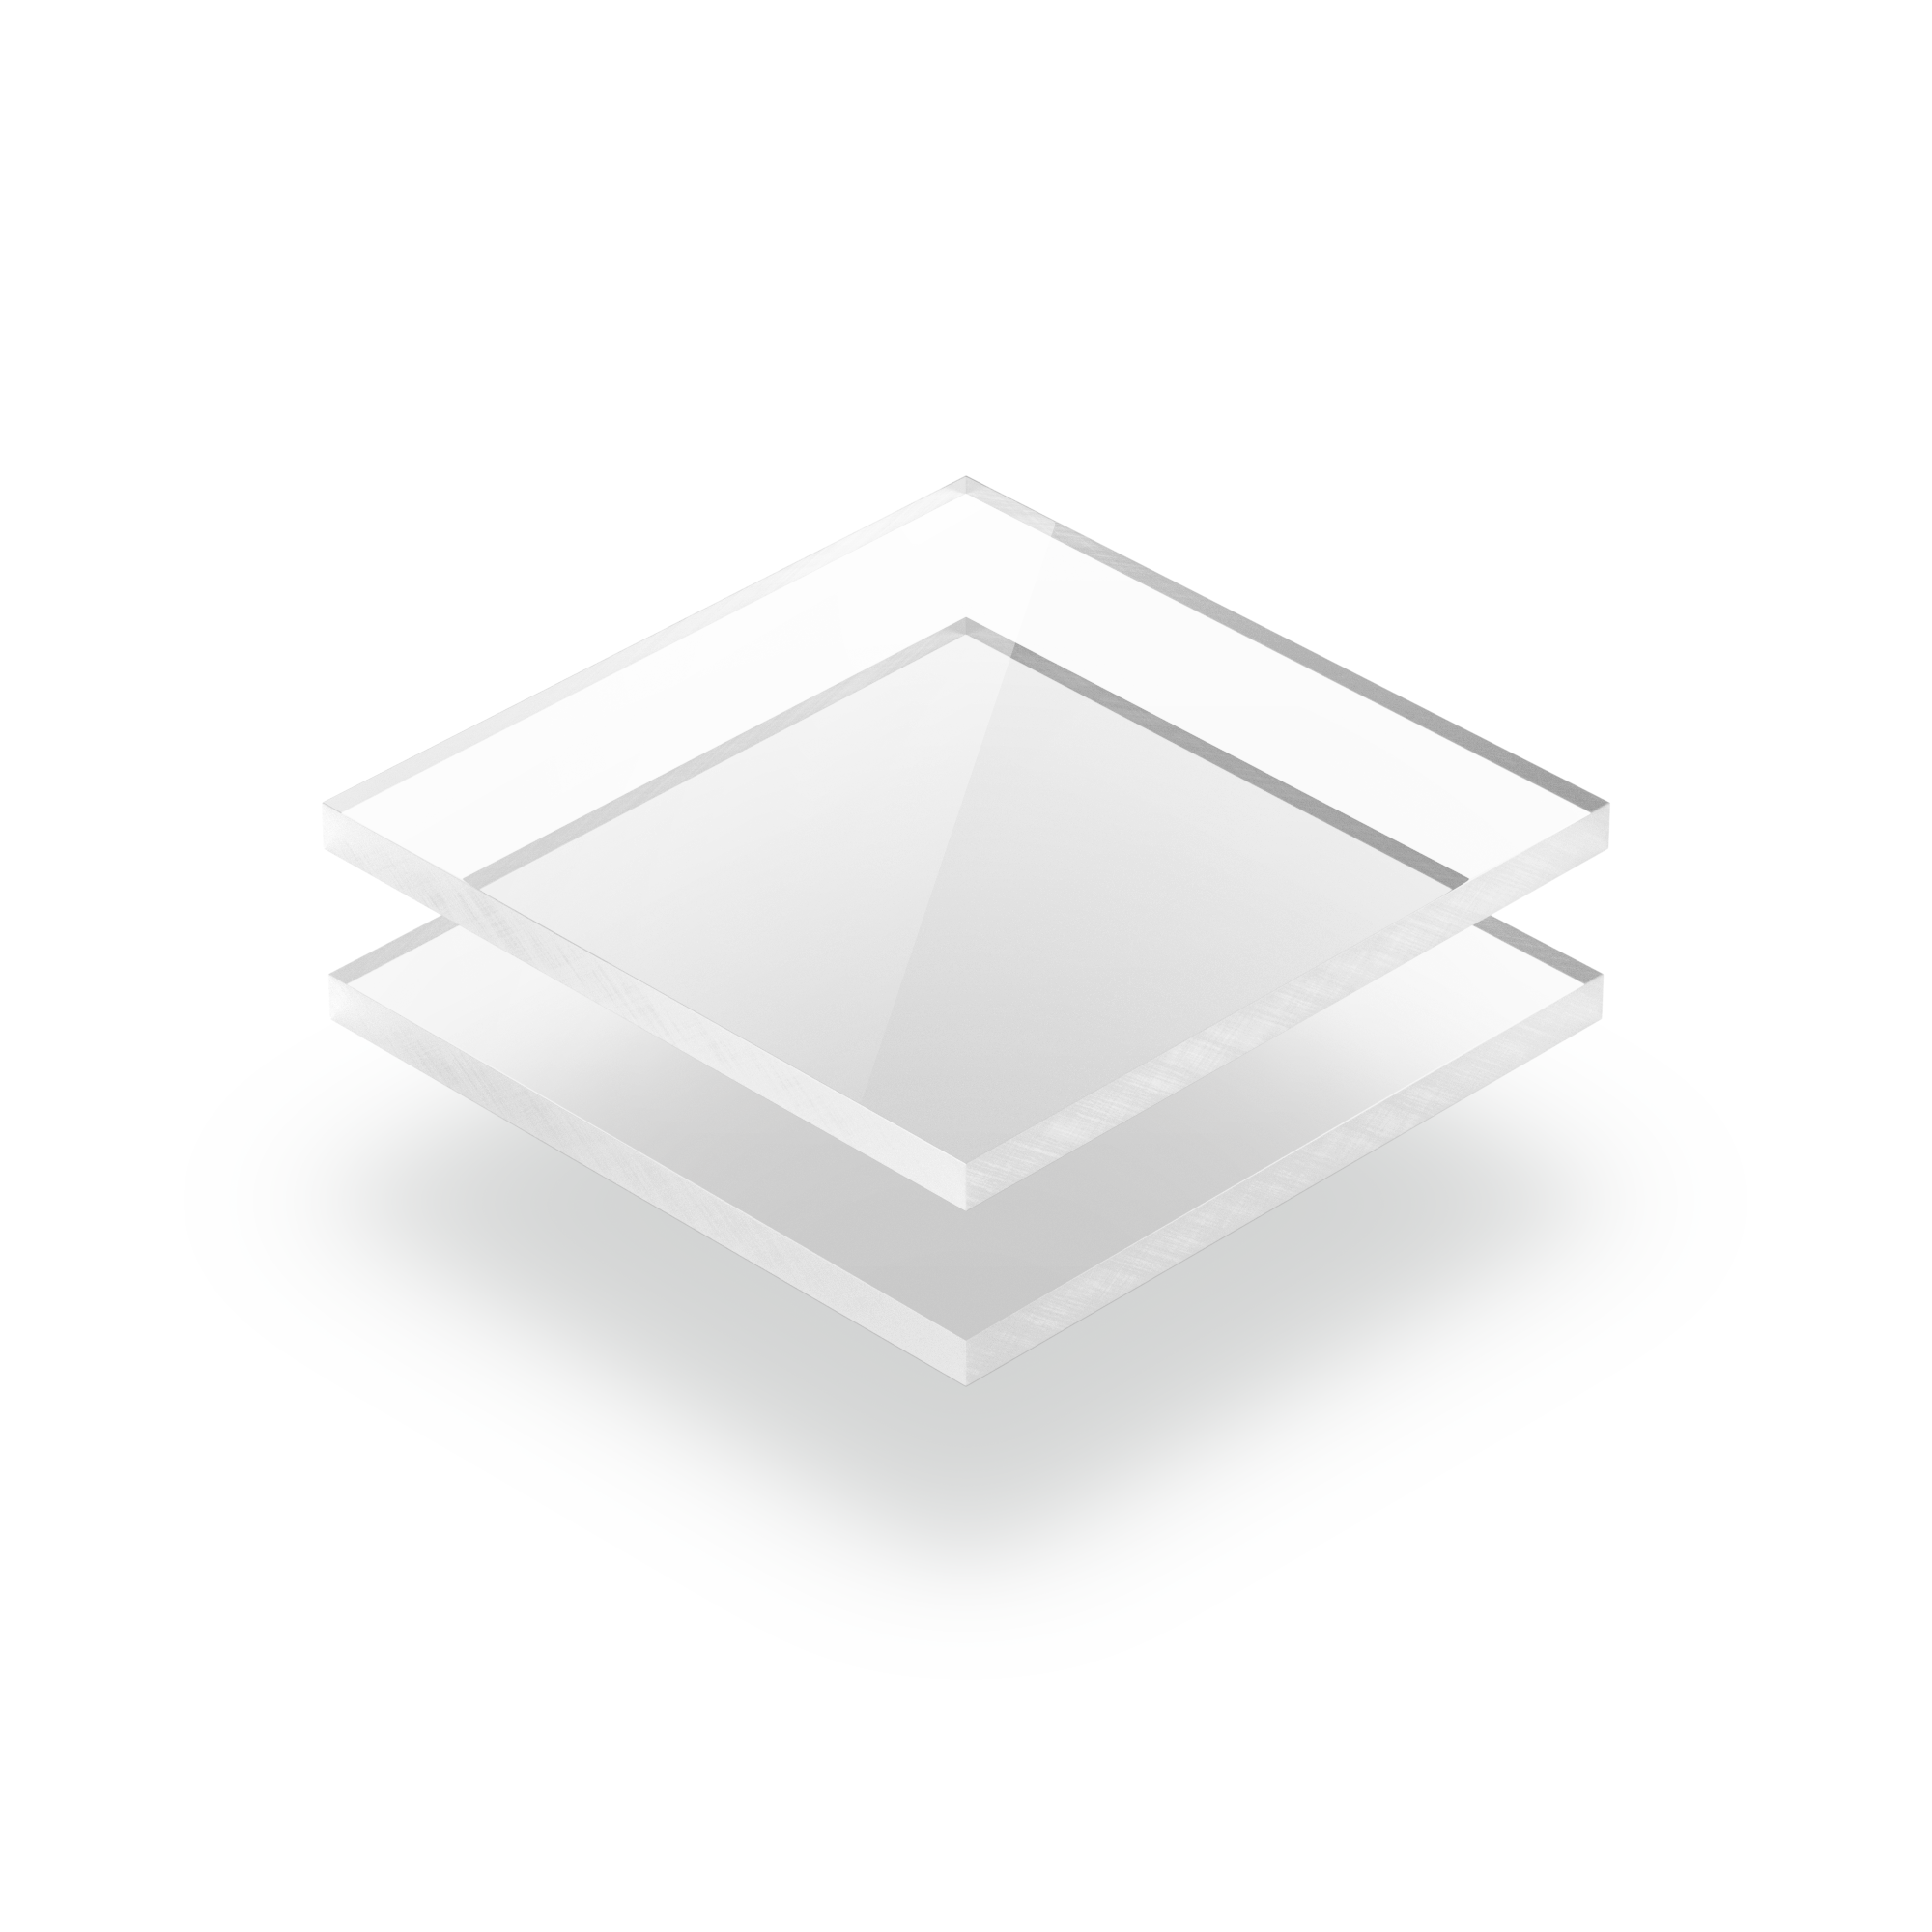 Clear Cast Gs Acrylic Sheet 10 Mm Plasticsheetsshop Co Uk